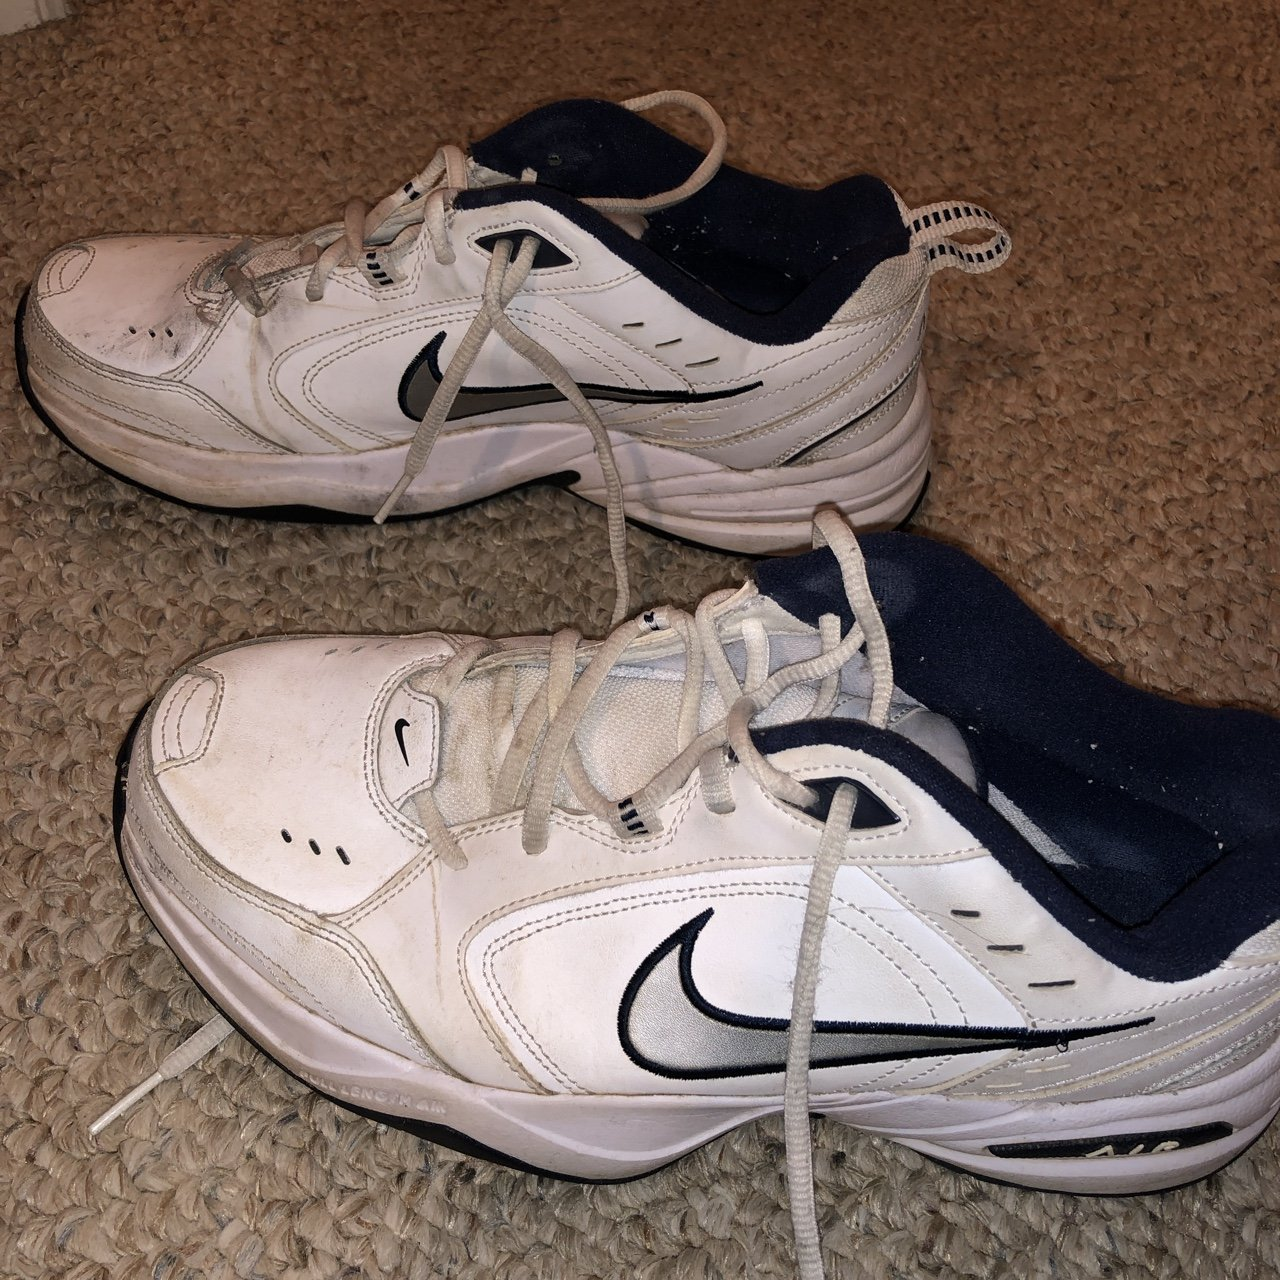 38eafddc6191 nike air monarch dad shoes a bit beat up but still have dad - Depop